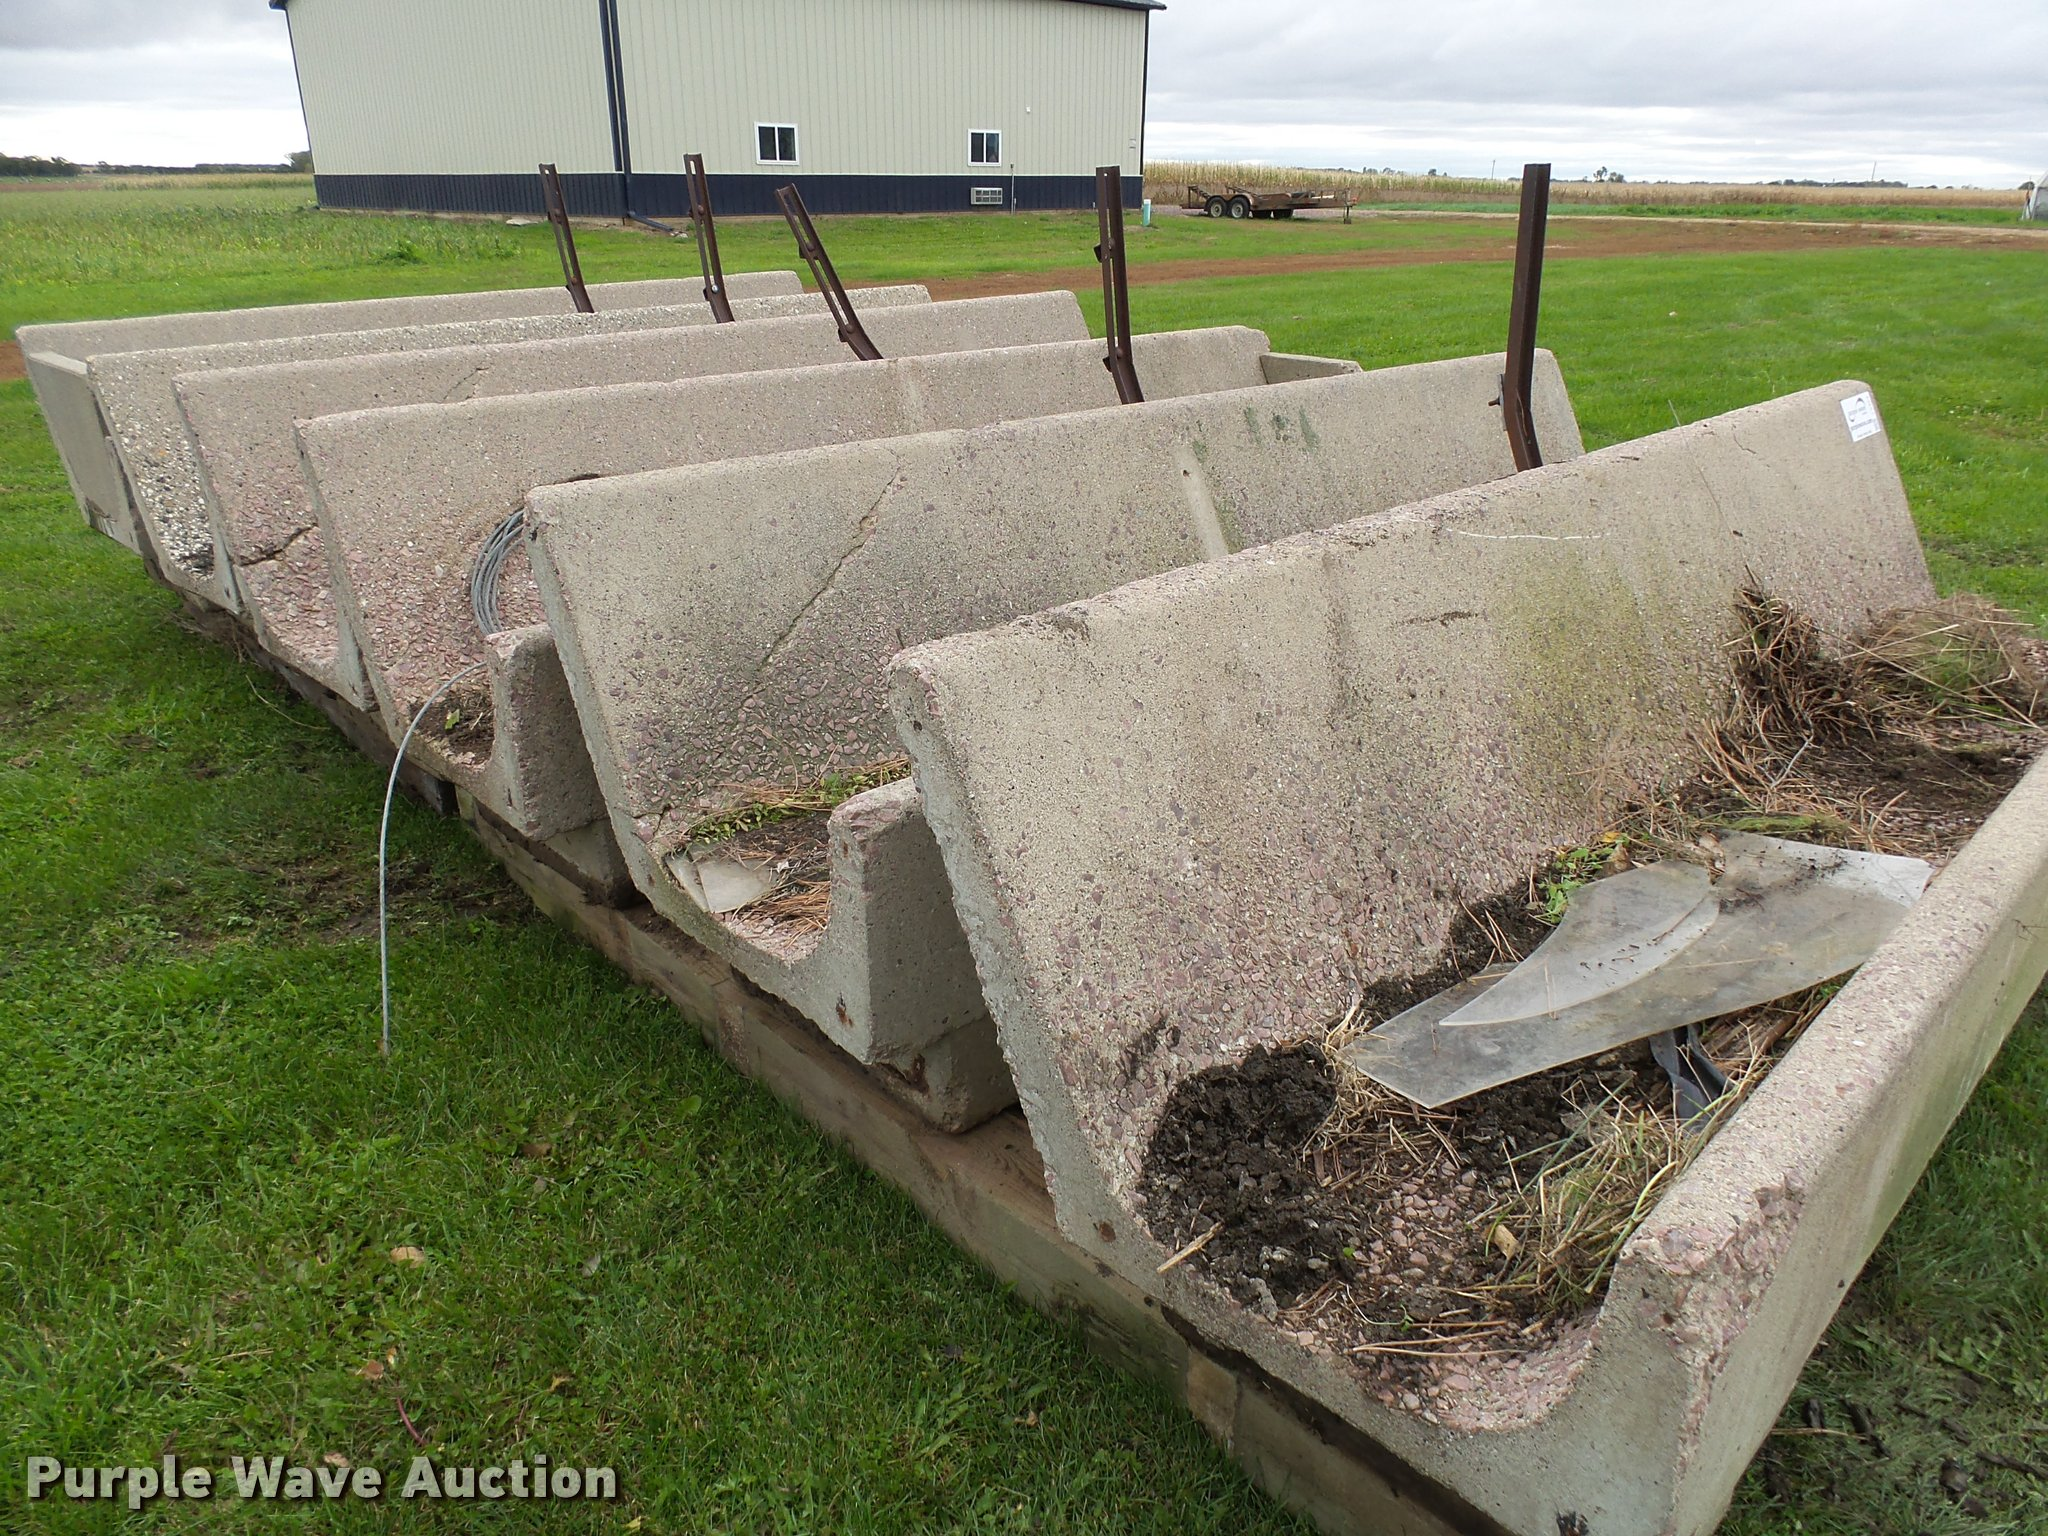 Cement Feed Bunks : Used construction agricultural equip trucks trailers